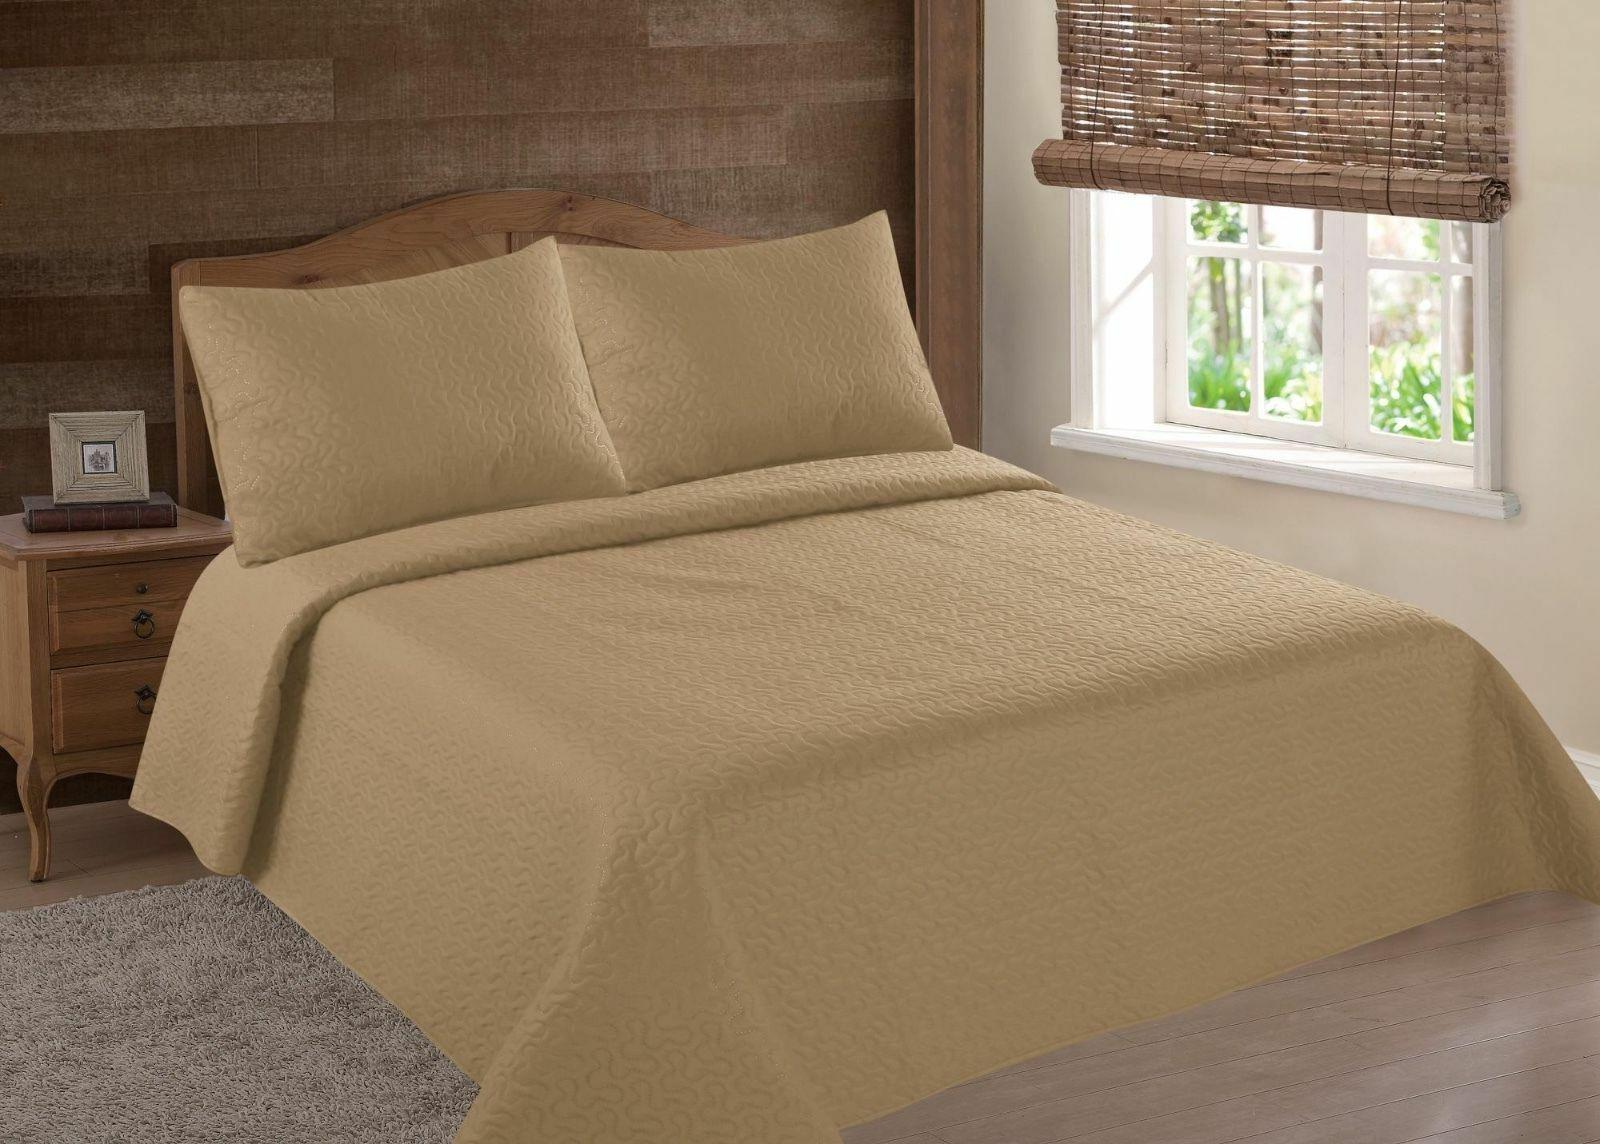 midwest gold nena solid quilt bedding bedspread